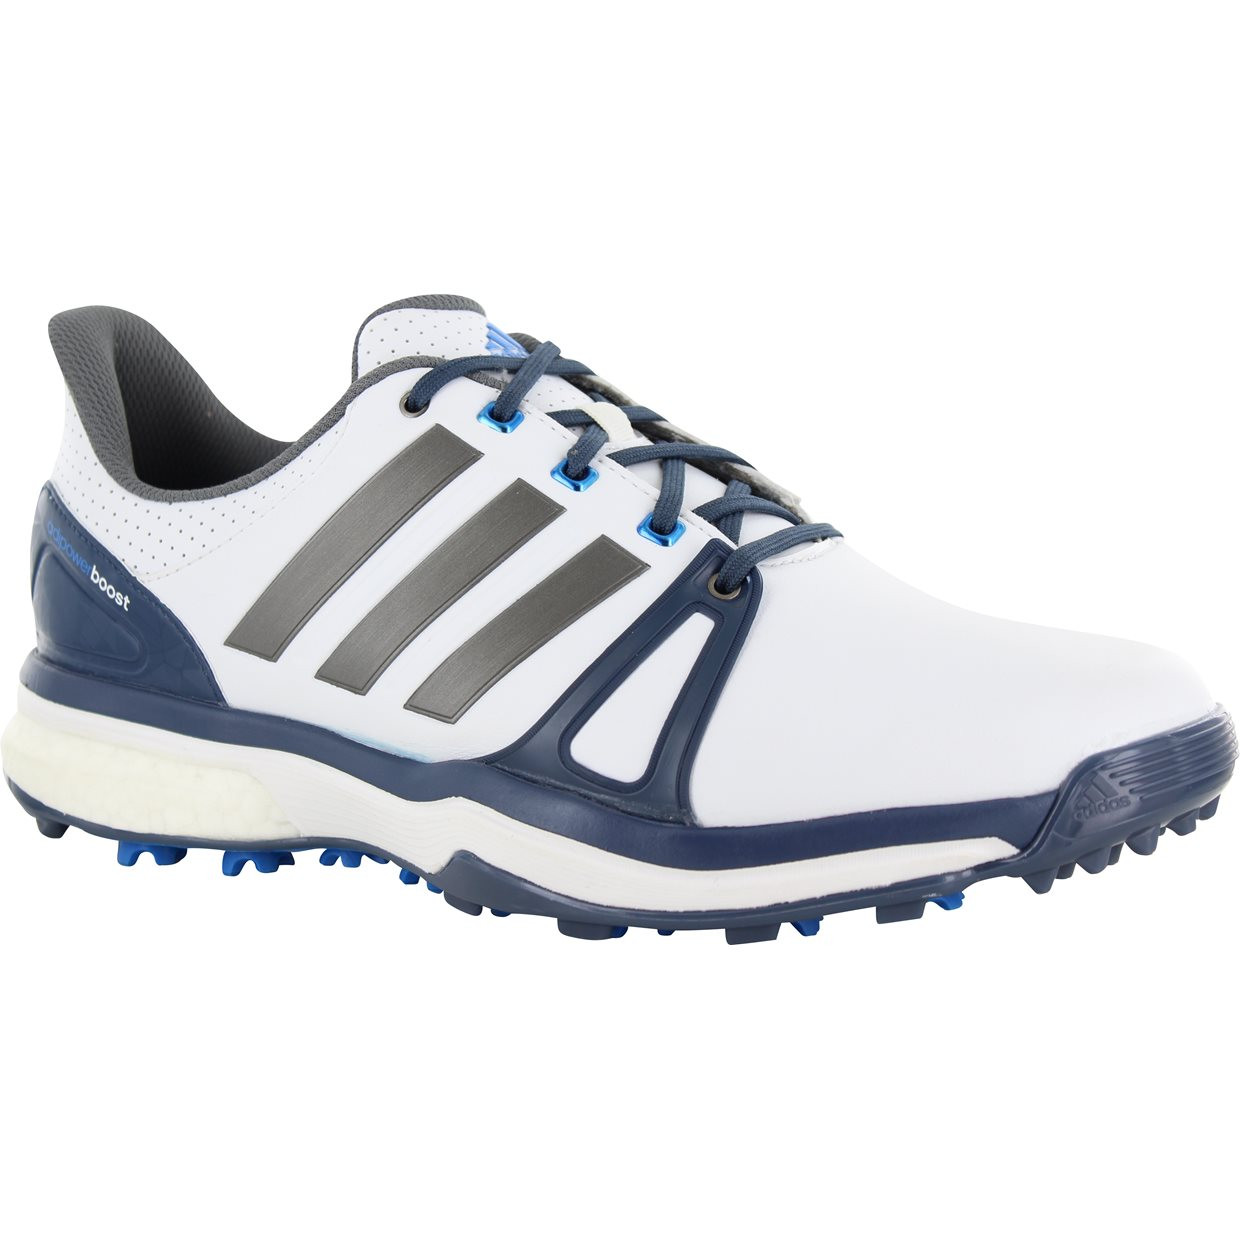 Adipower S Boost  Golf Shoes